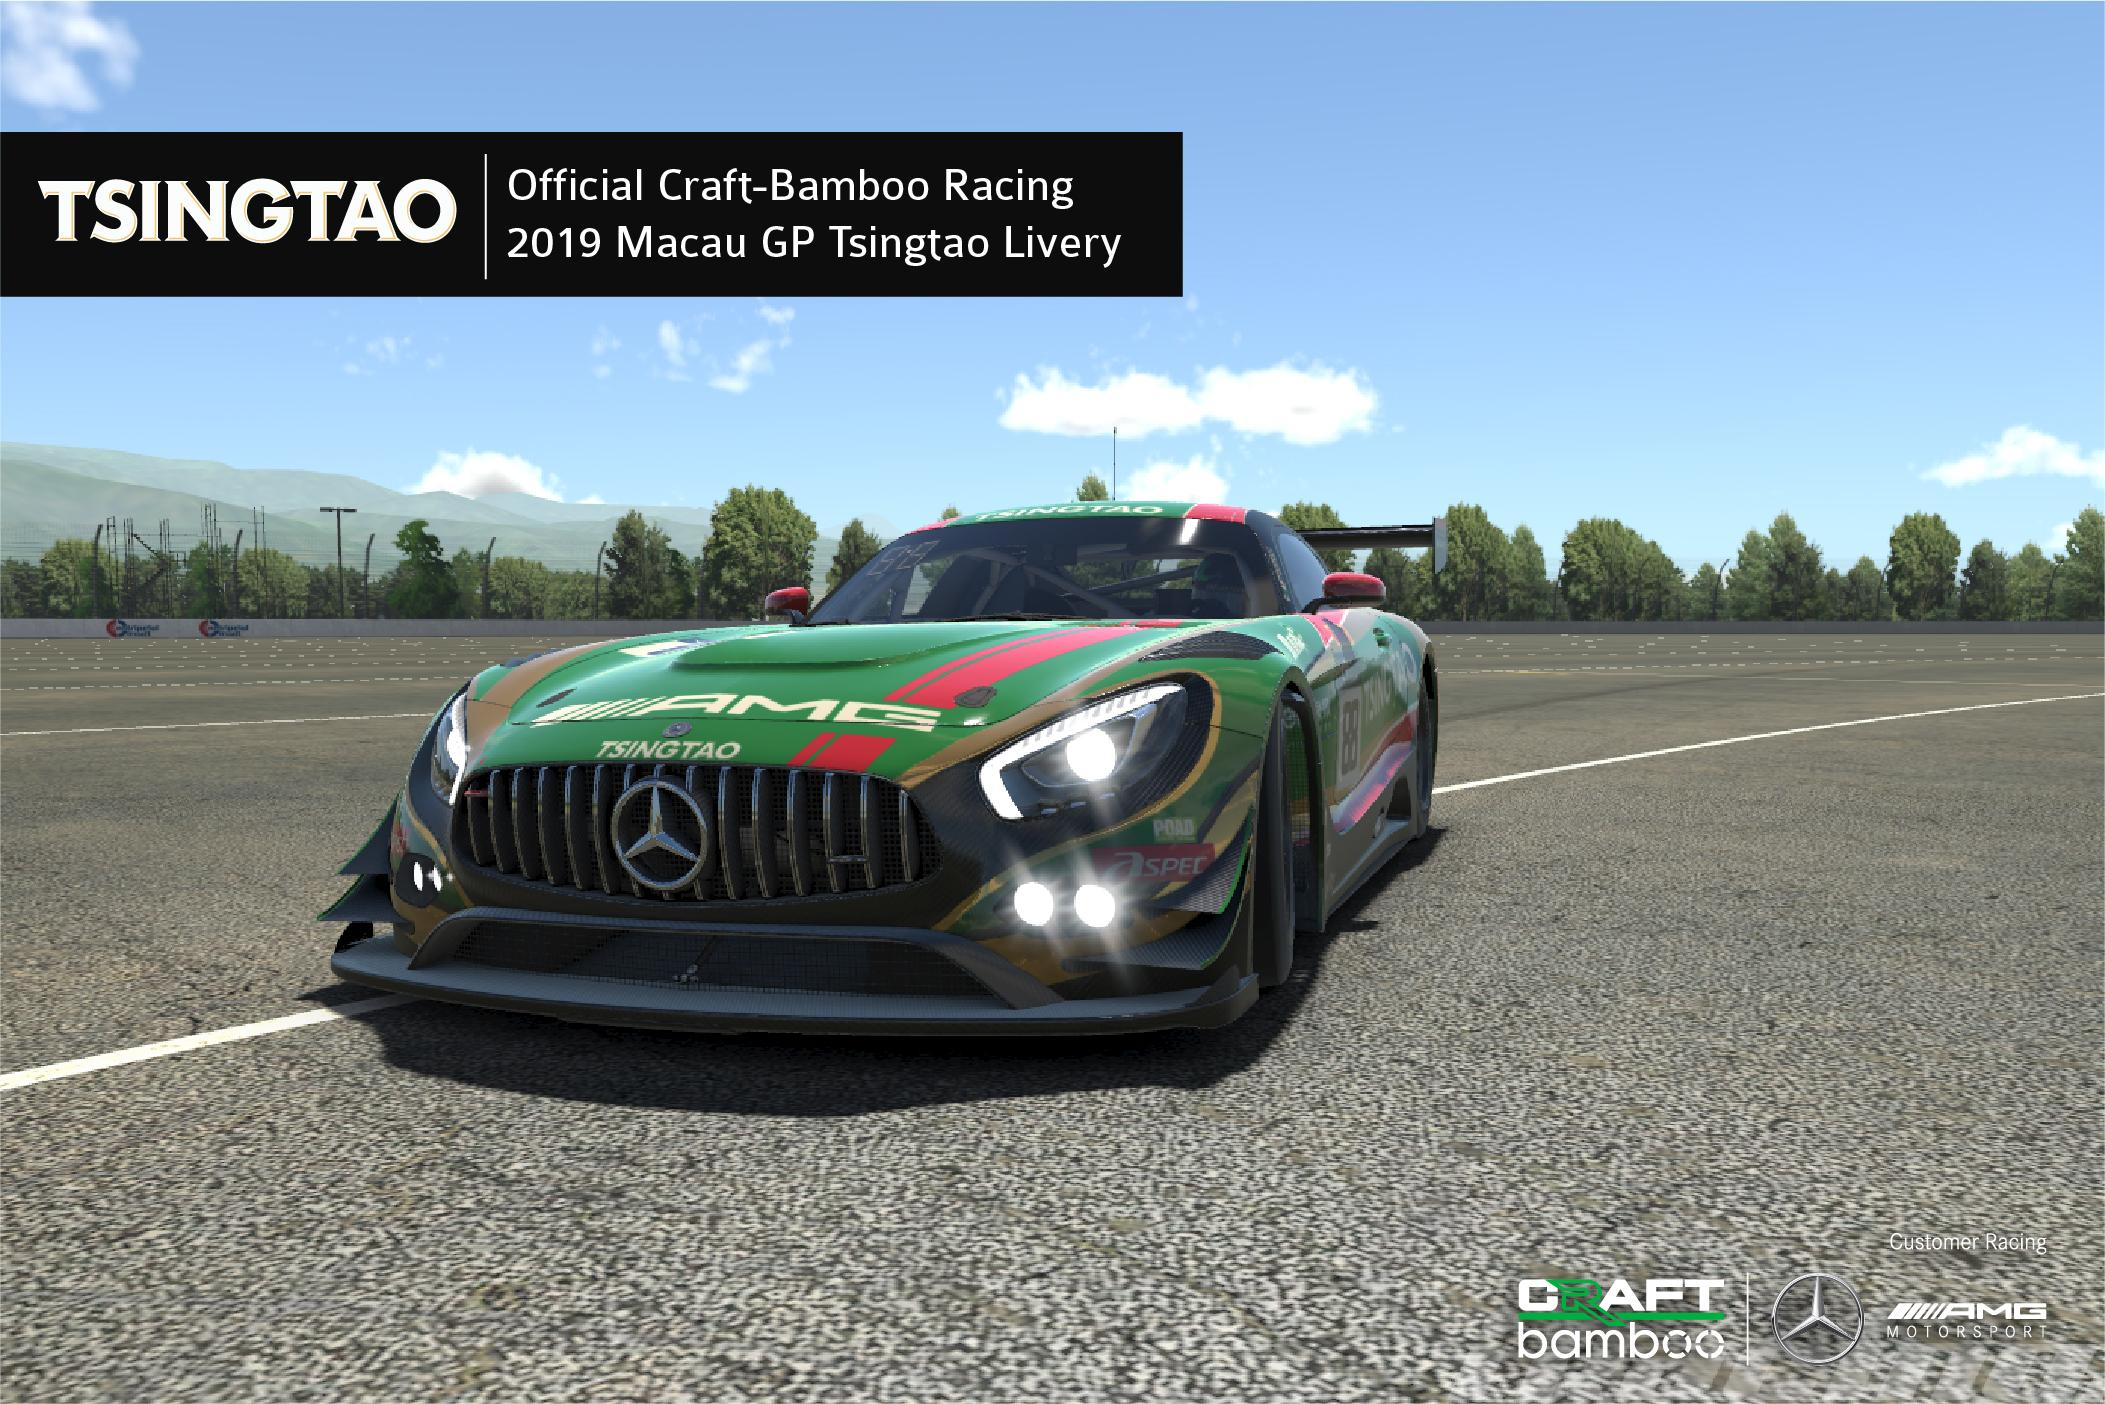 Preview of Official Craft-Bamboo Racing - 2019 Macau GP Tsingtao Livery by Arthur T.